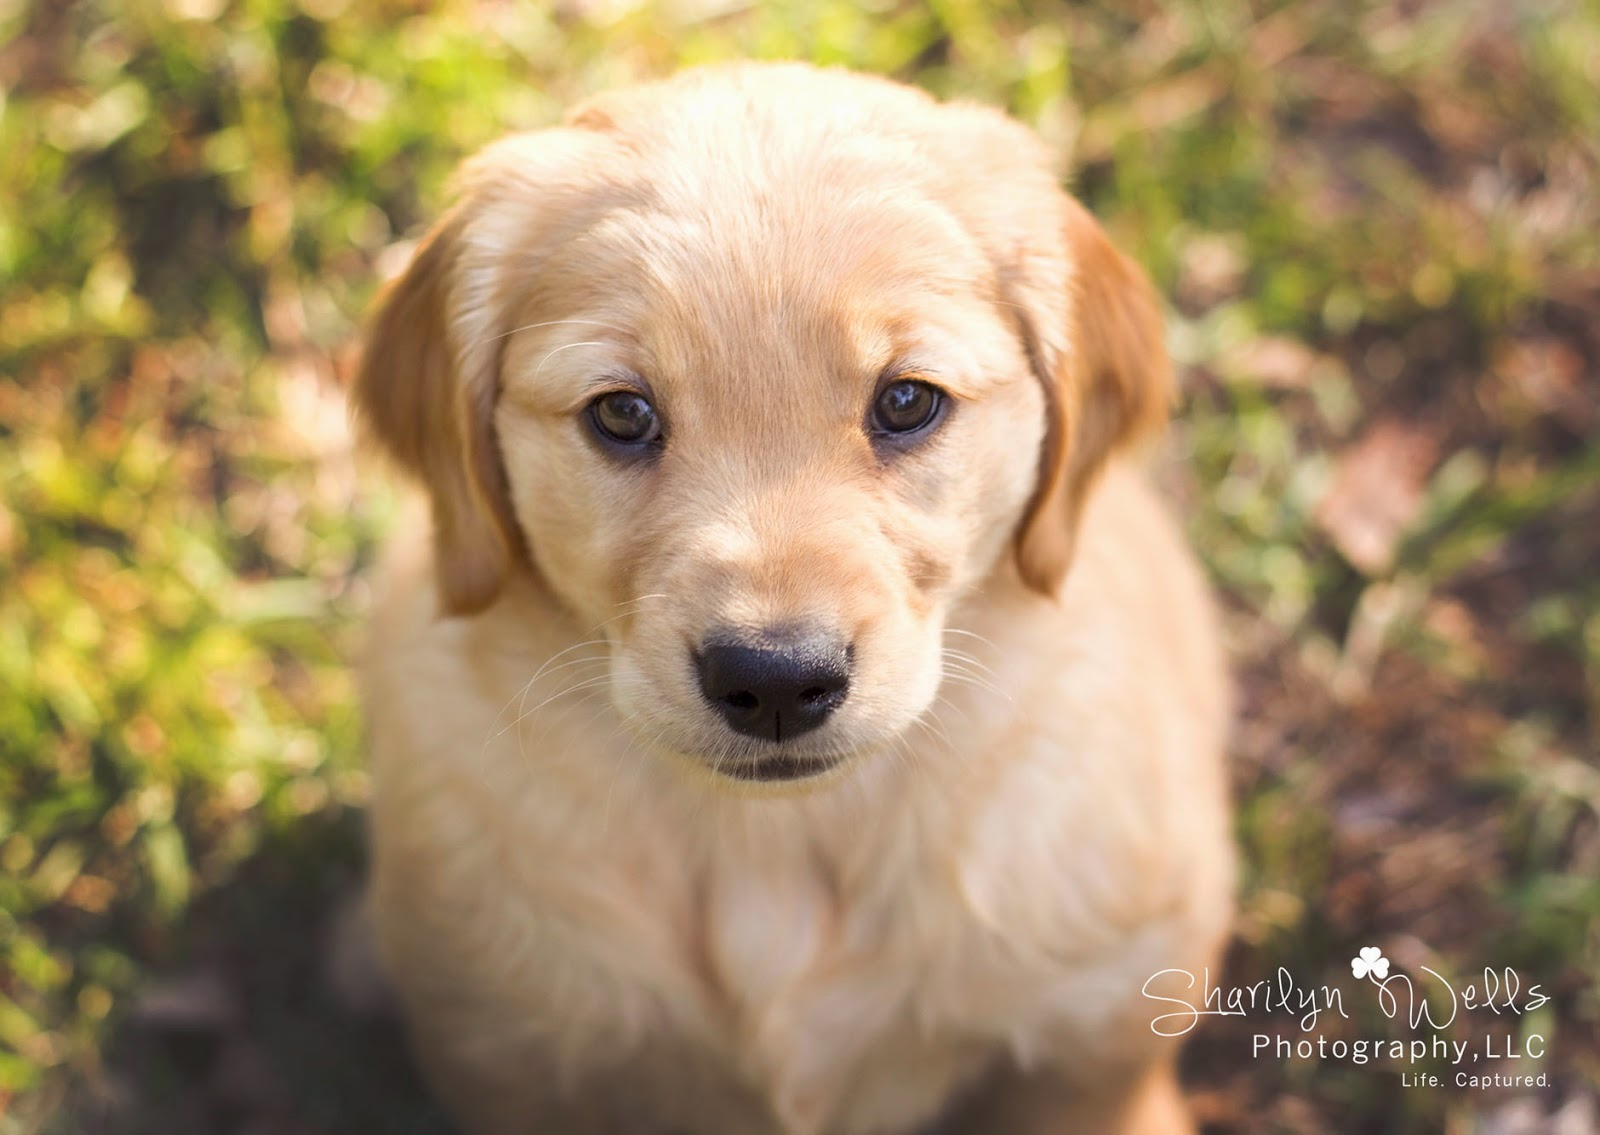 Sharilyn Wells Photography A Pup Named Nala Pet Photography